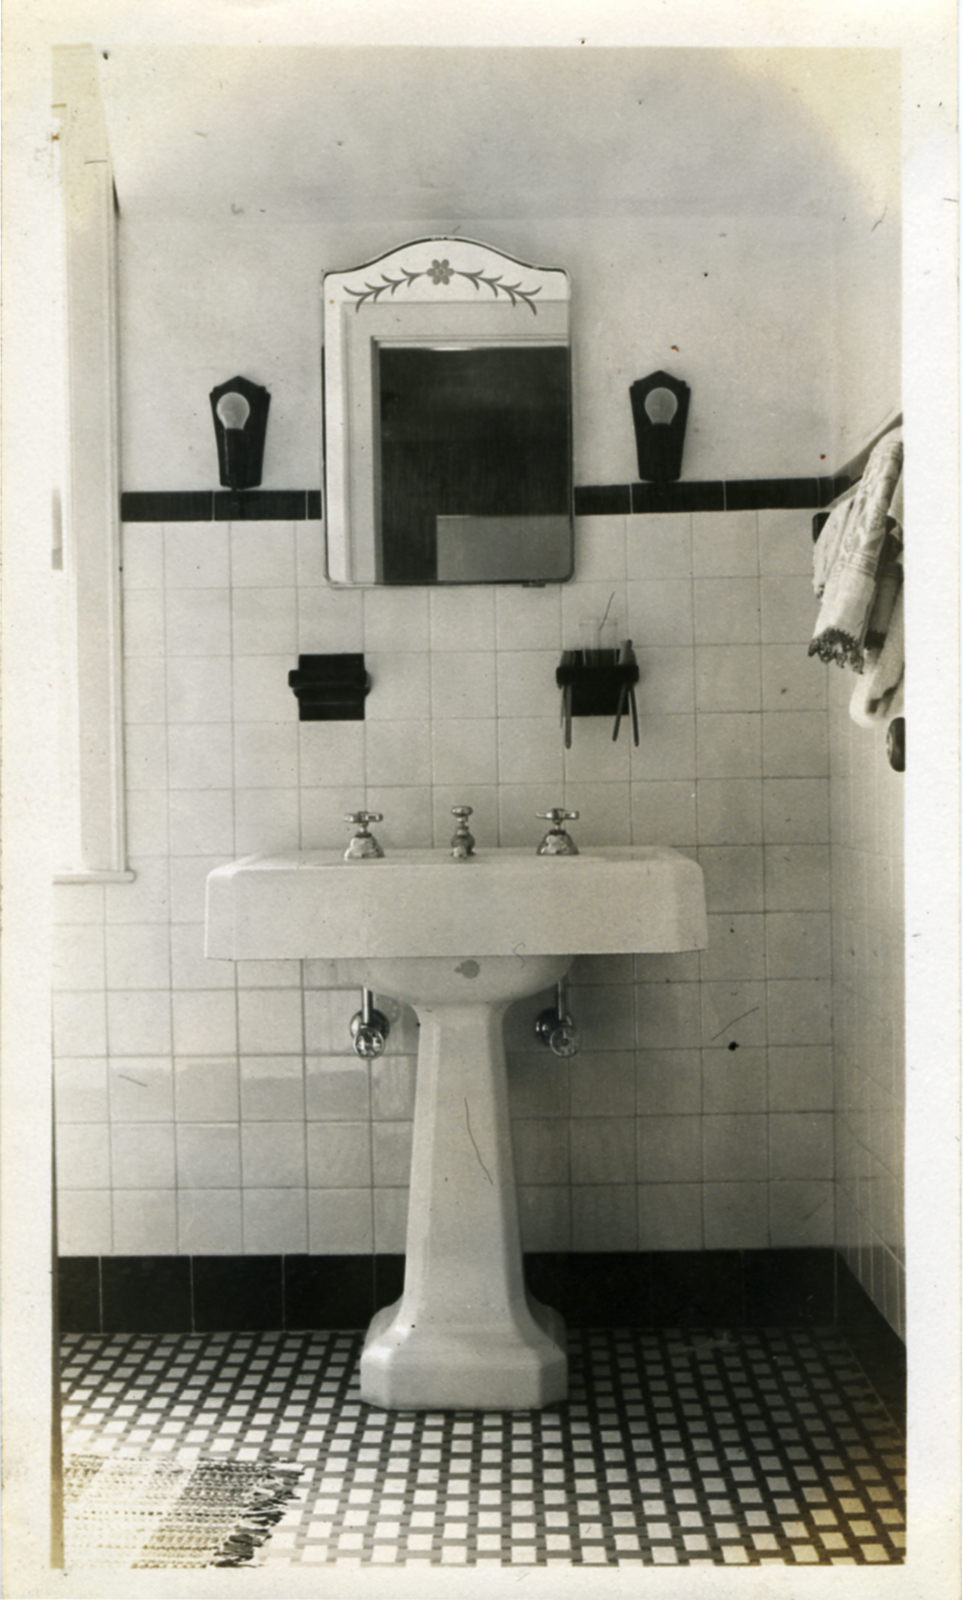 Bathroom on pinterest 1930s bathroom hex tile and tile for 1930 bathroom design ideas